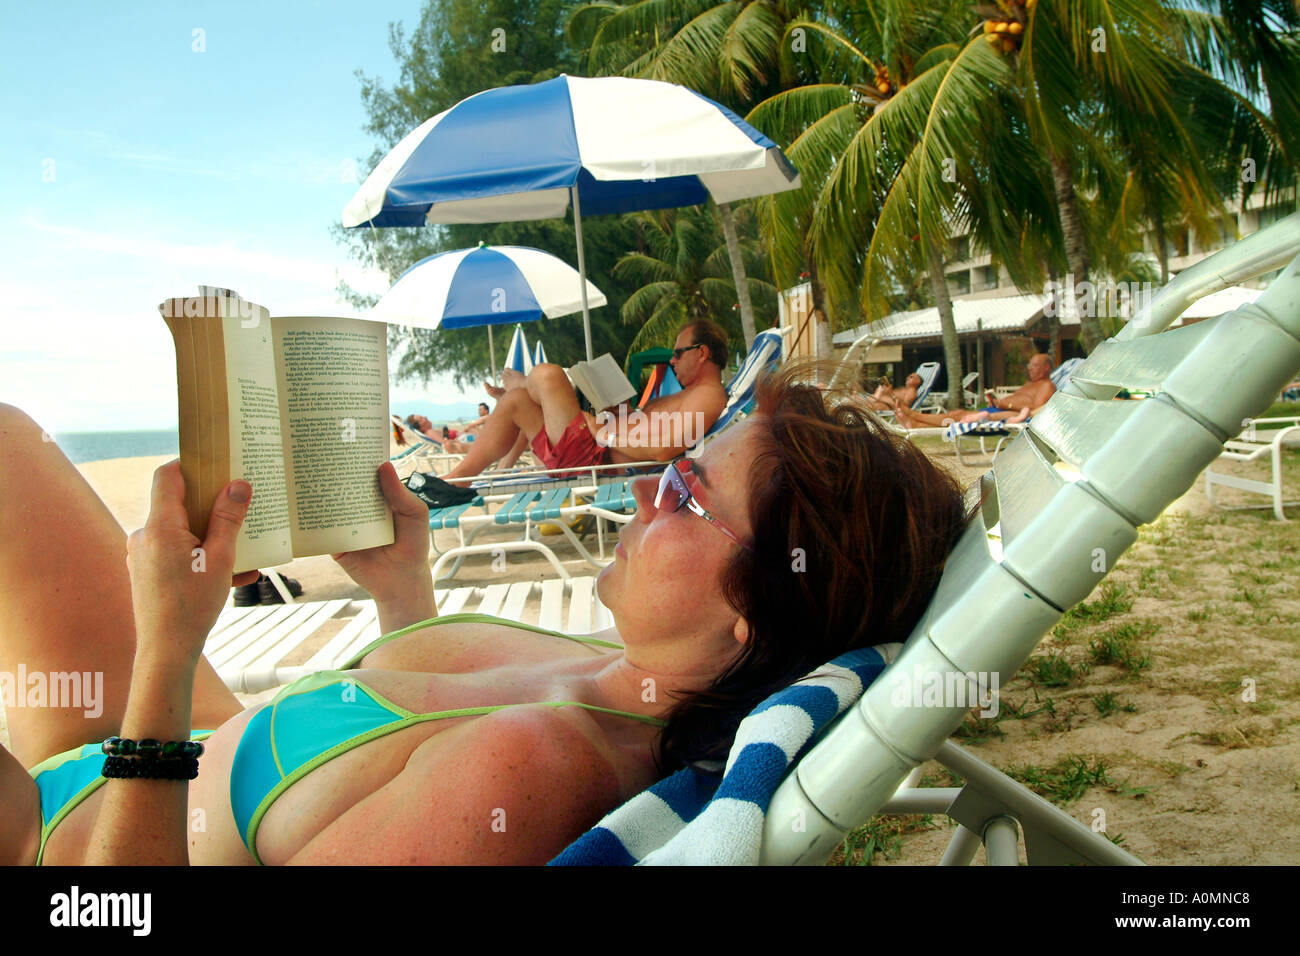 Relaxing in a tropical resort,  photo by Bruce Miller 11 2004 - Stock Image